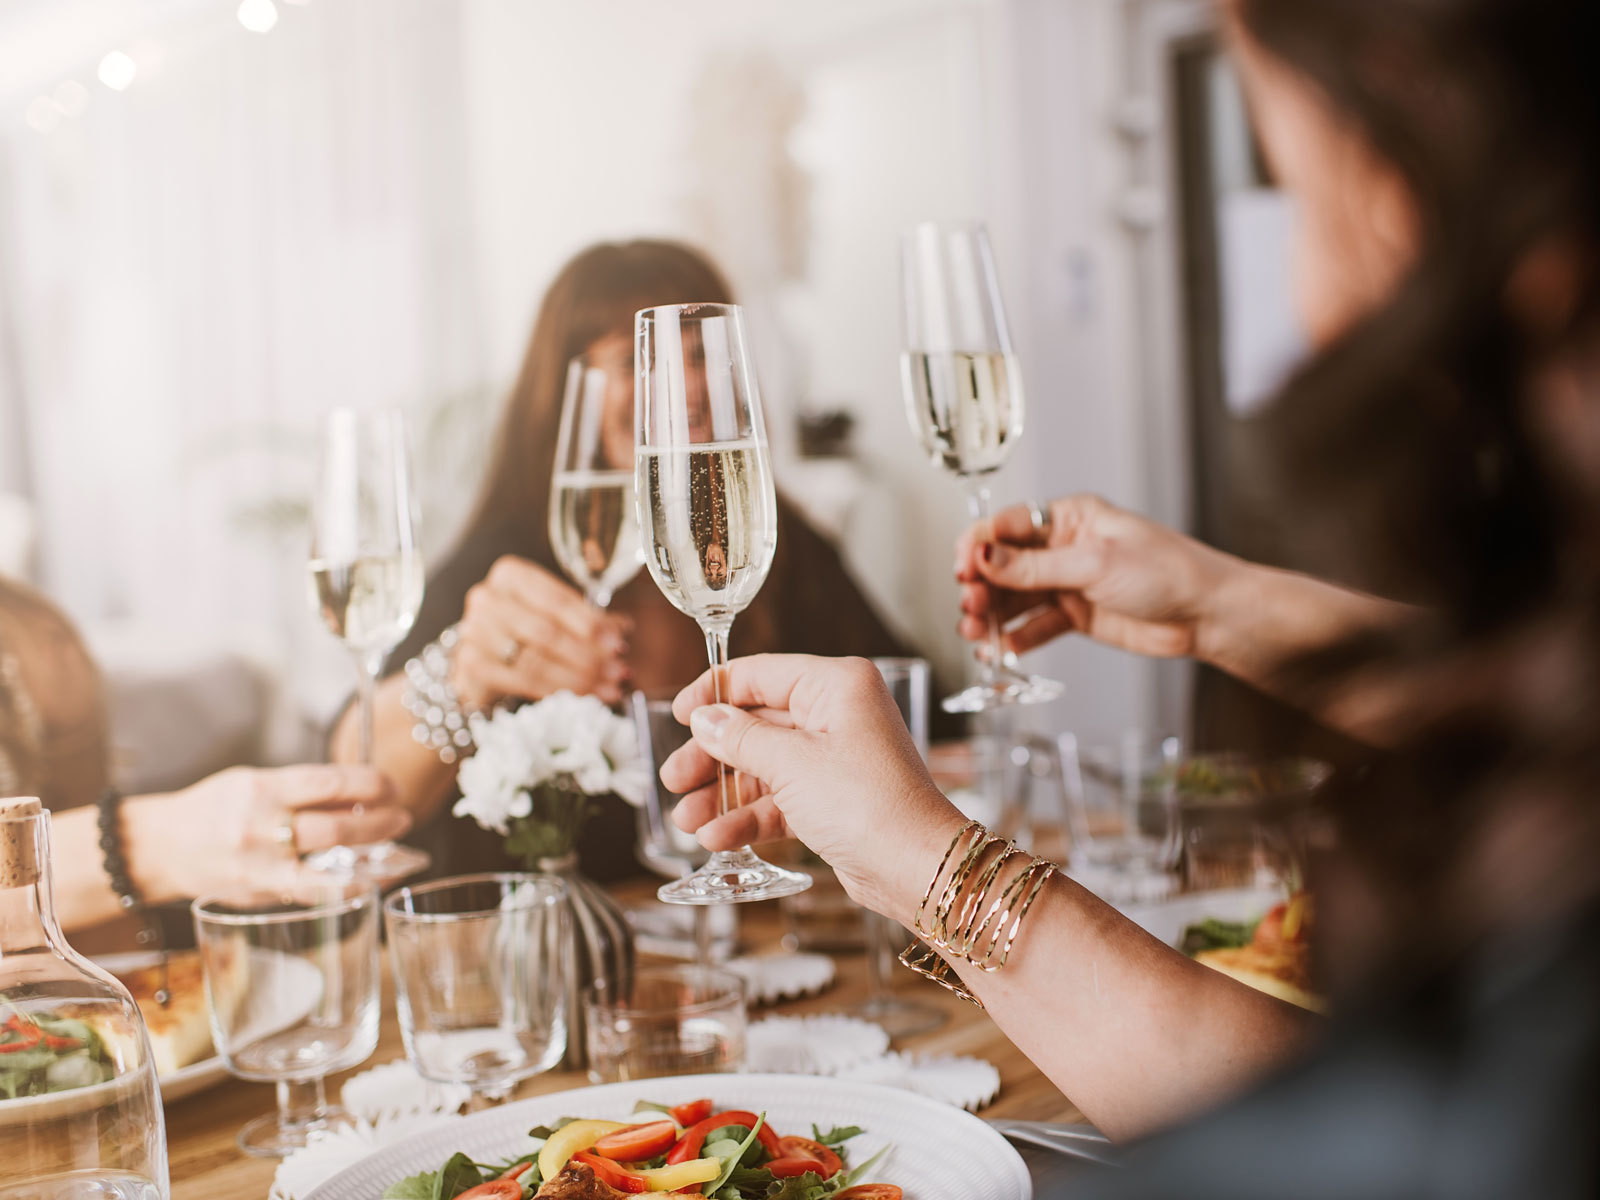 The Ultimate Holiday Dinner Party Planning Guide